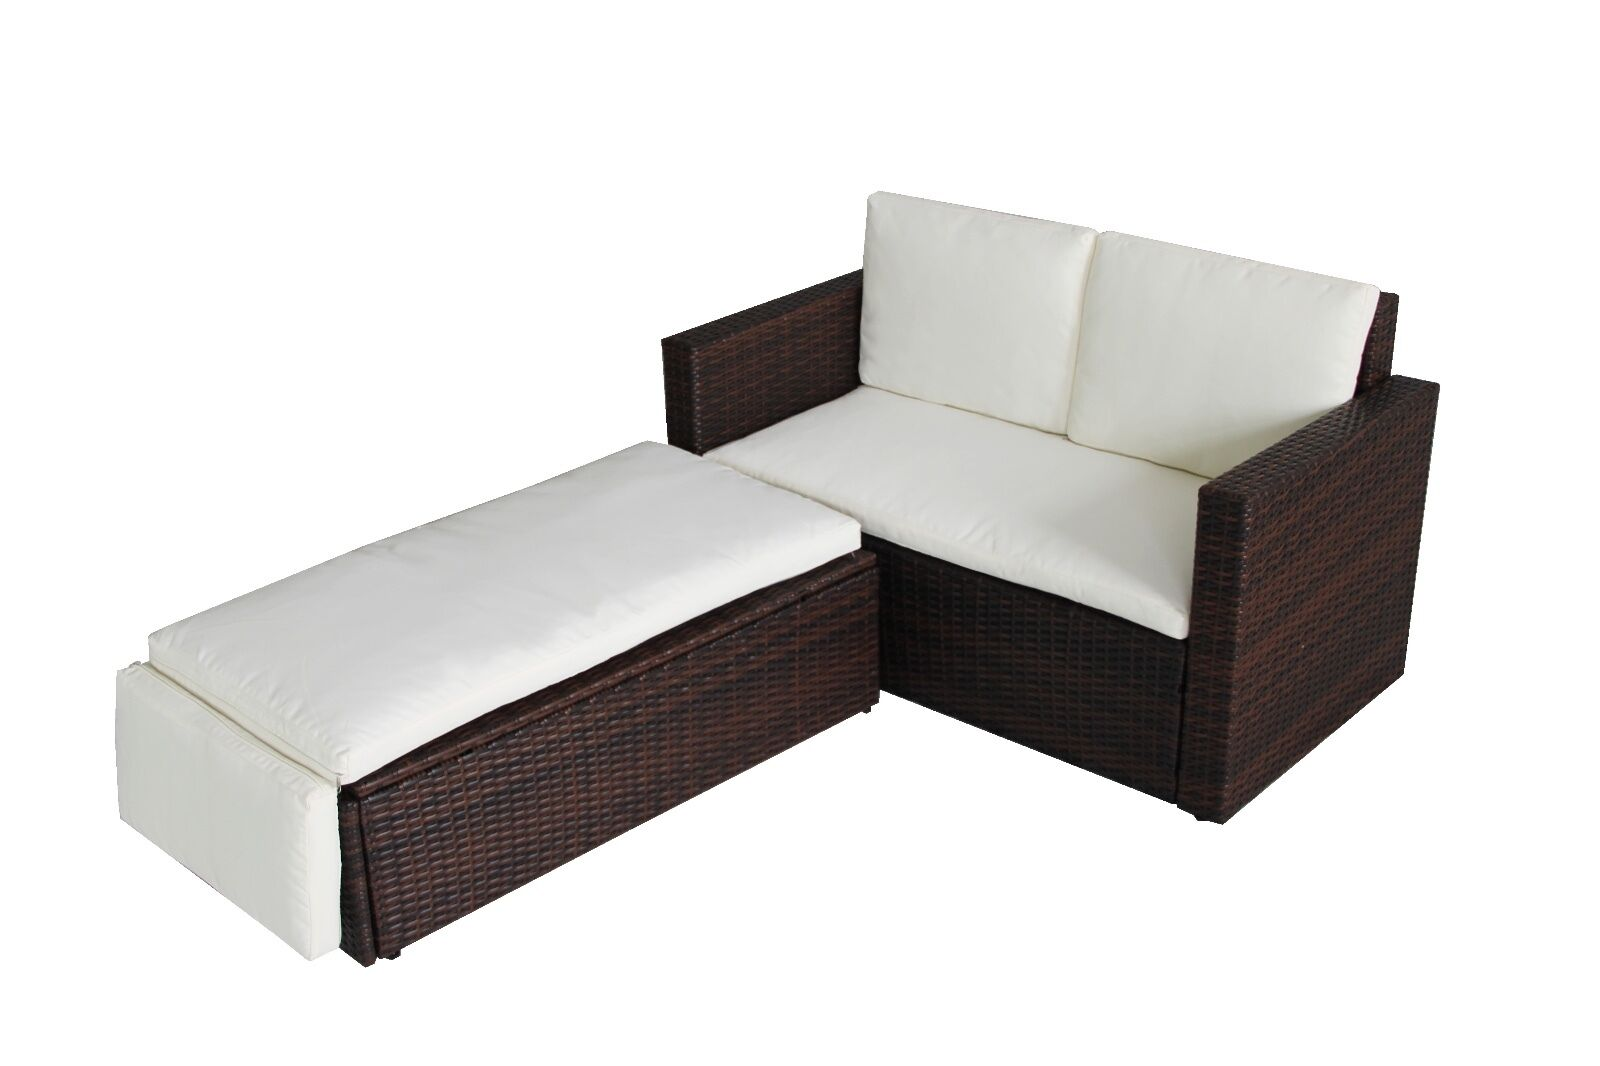 Garden Furniture - Rattan Outdoor Garden Sofa Furniture Love Bed Patio Sun bed 2 seater Brown New